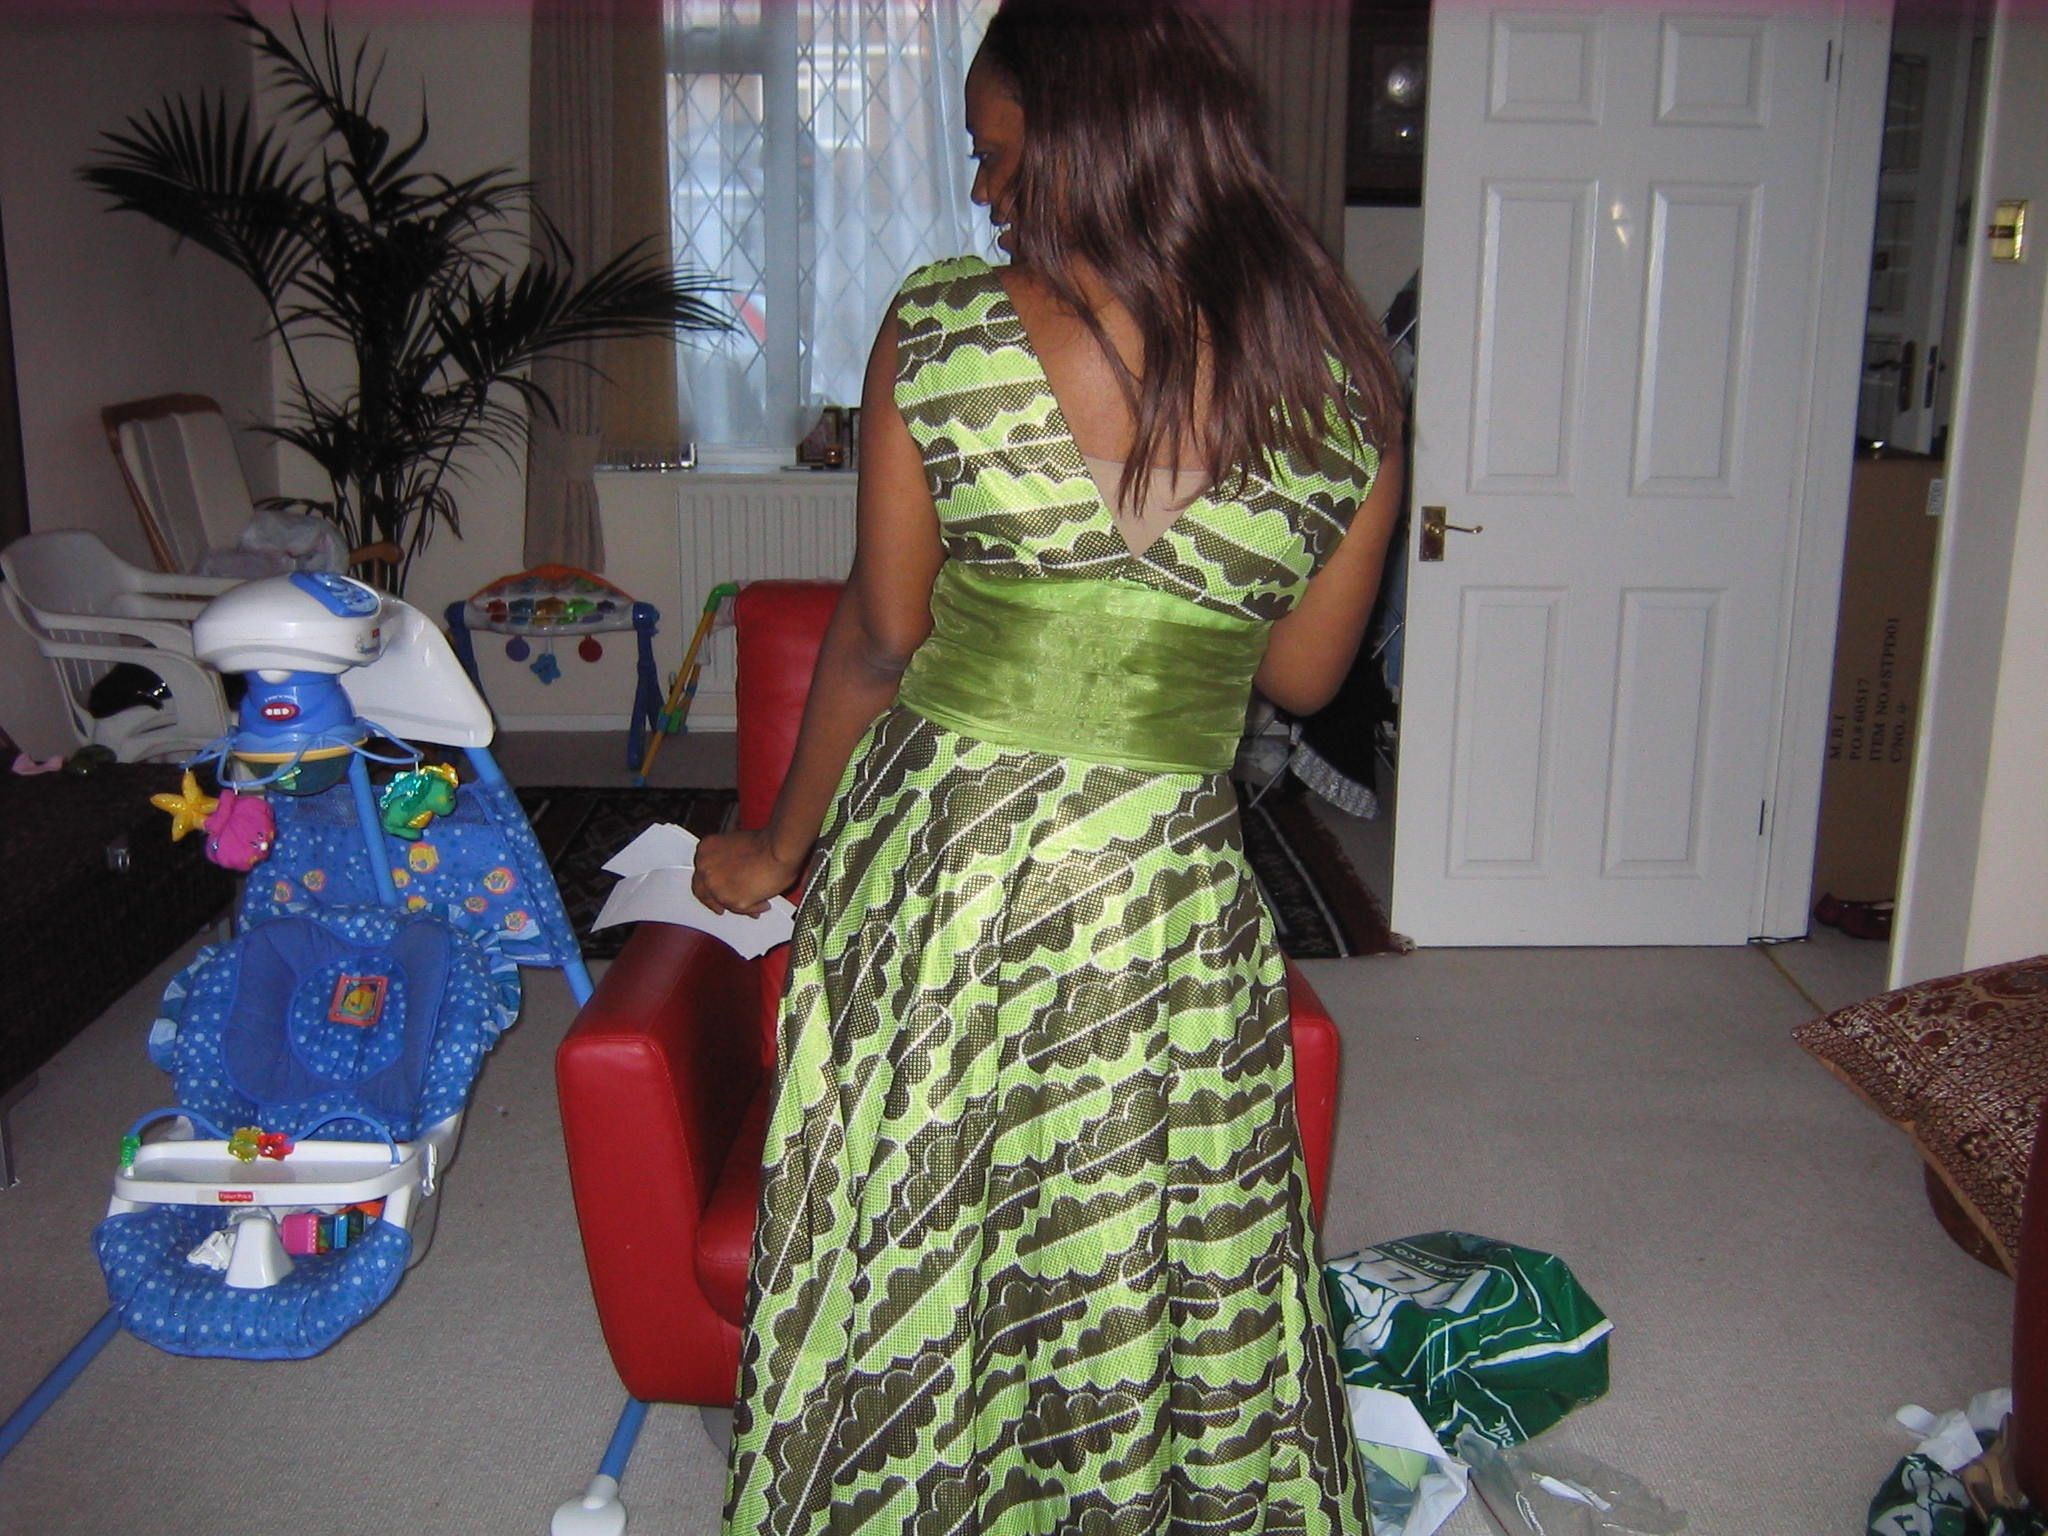 Ije modelling her dress for us